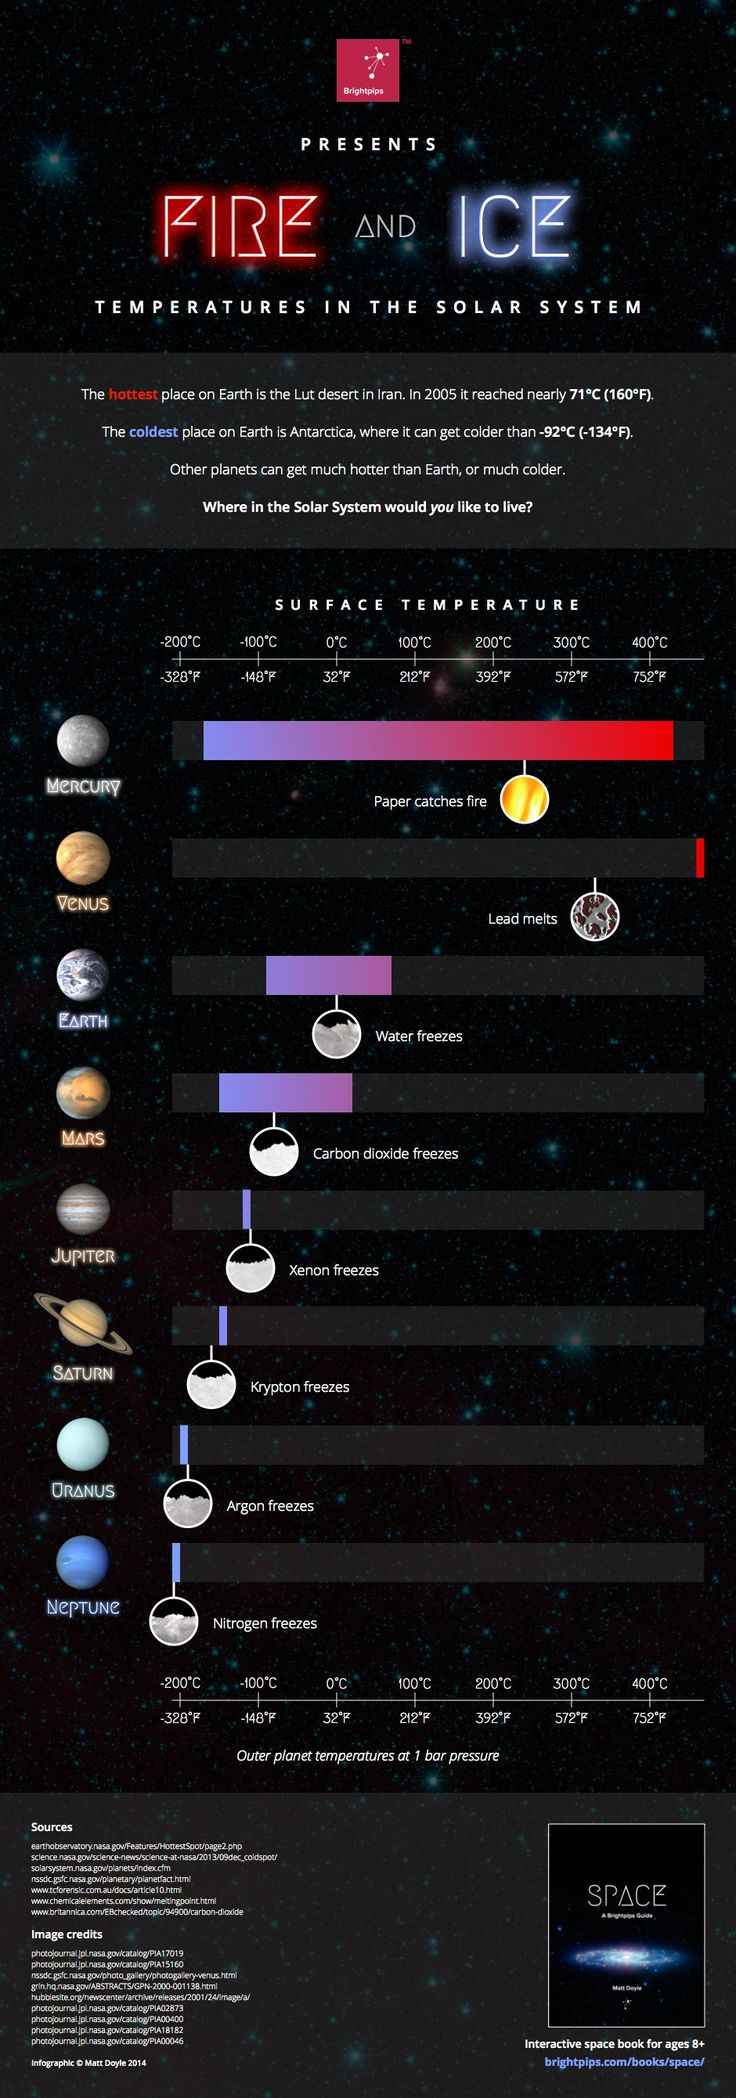 best images about cool space stuff astronauts fire and ice temperatures of the solar system